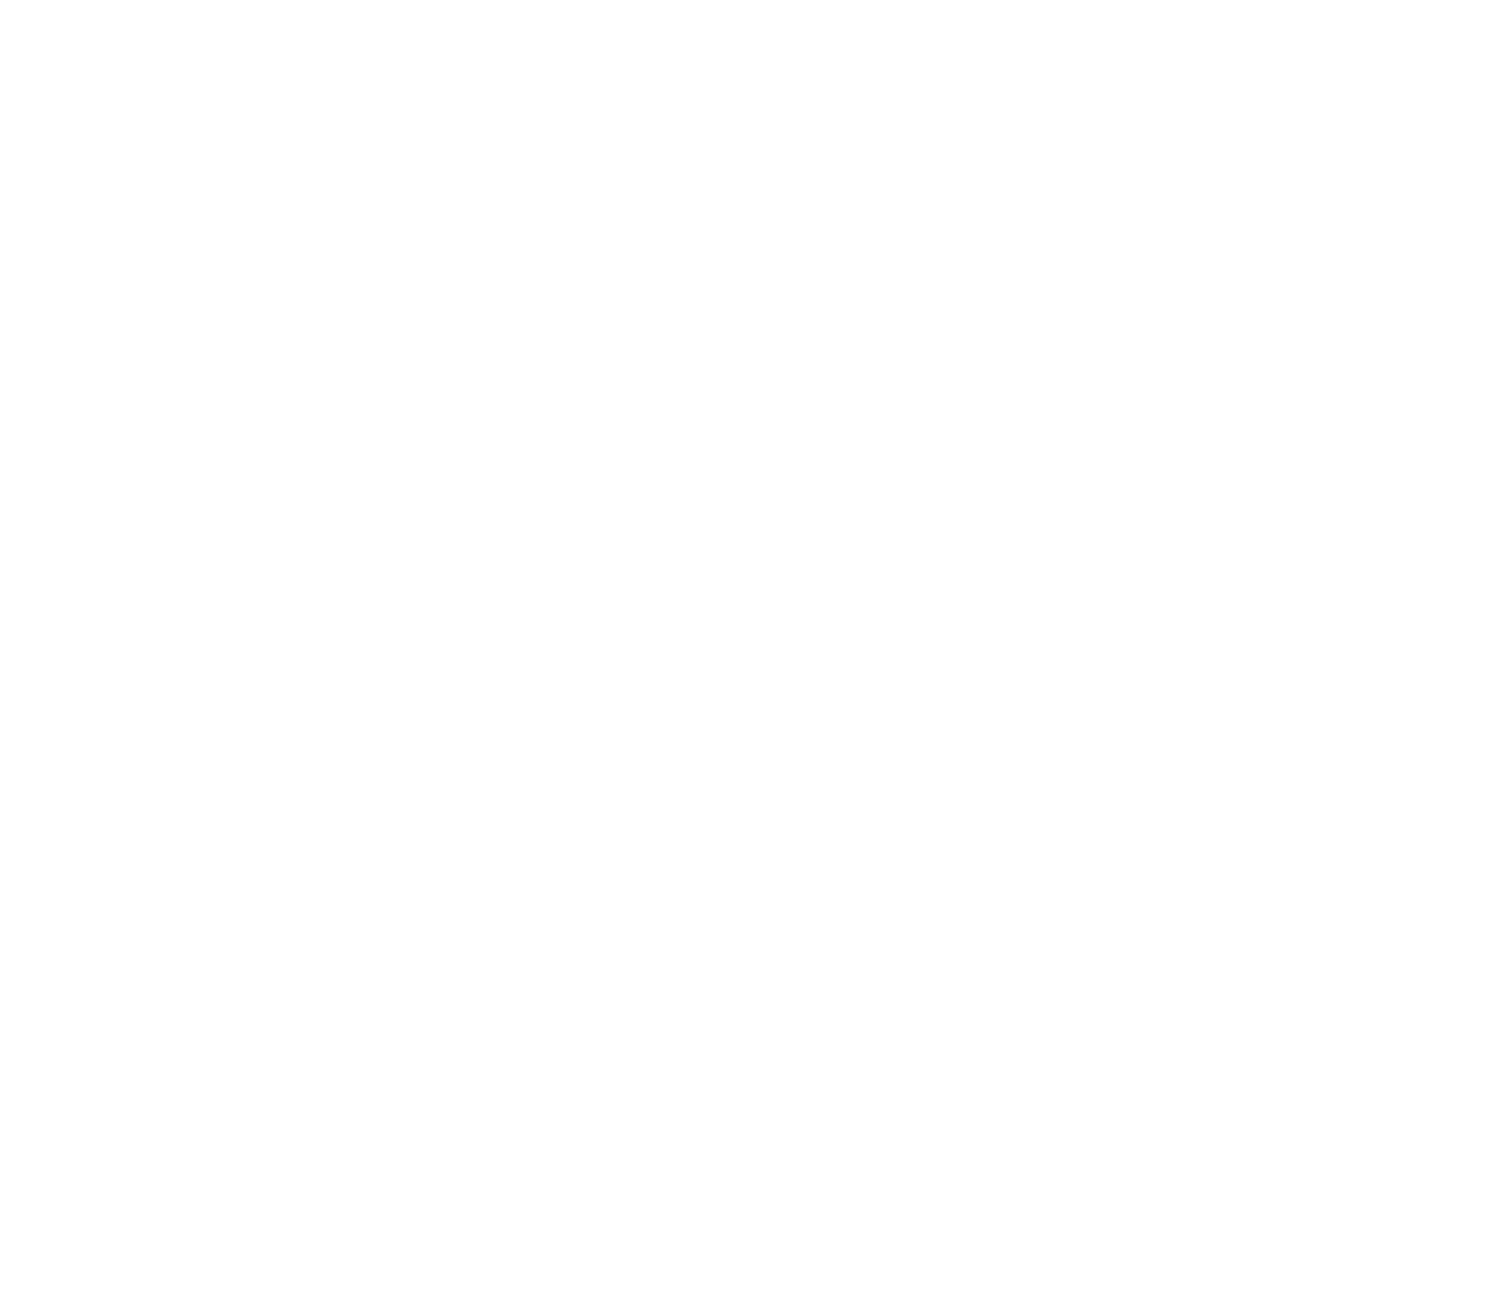 The Cathy Kangas Foundation for Animals